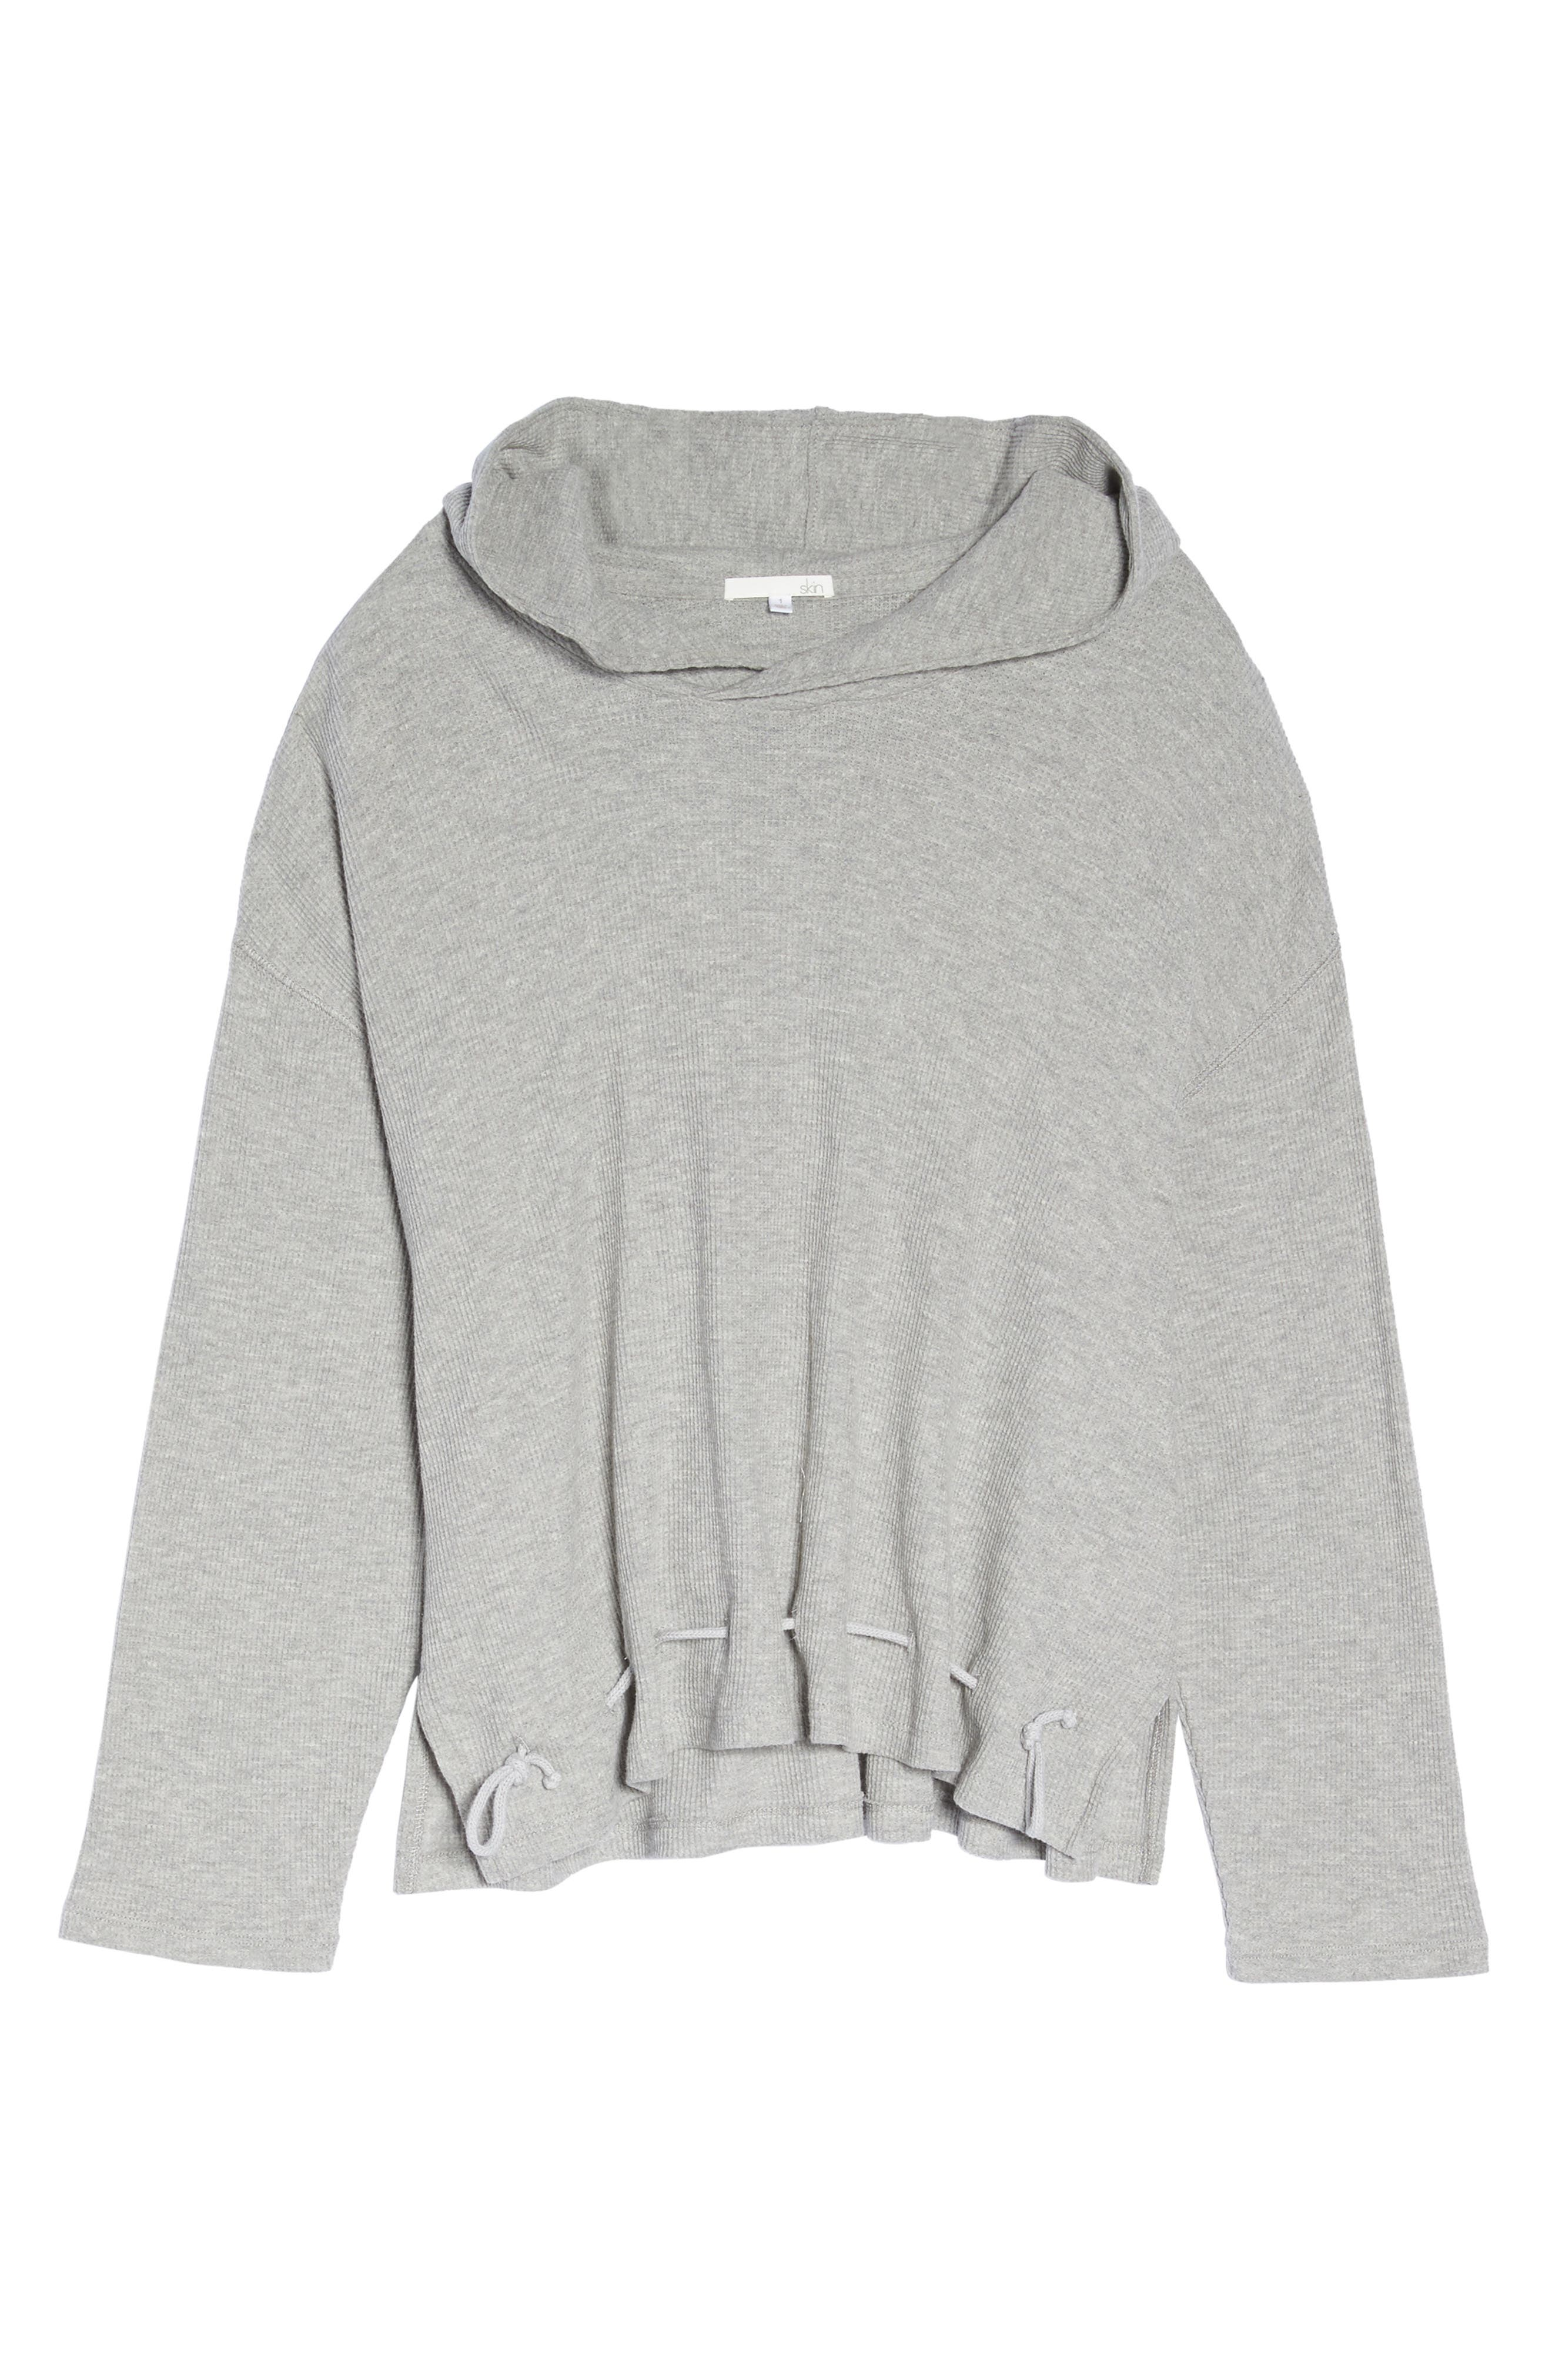 Thermal Hooded Top,                             Alternate thumbnail 6, color,                             020